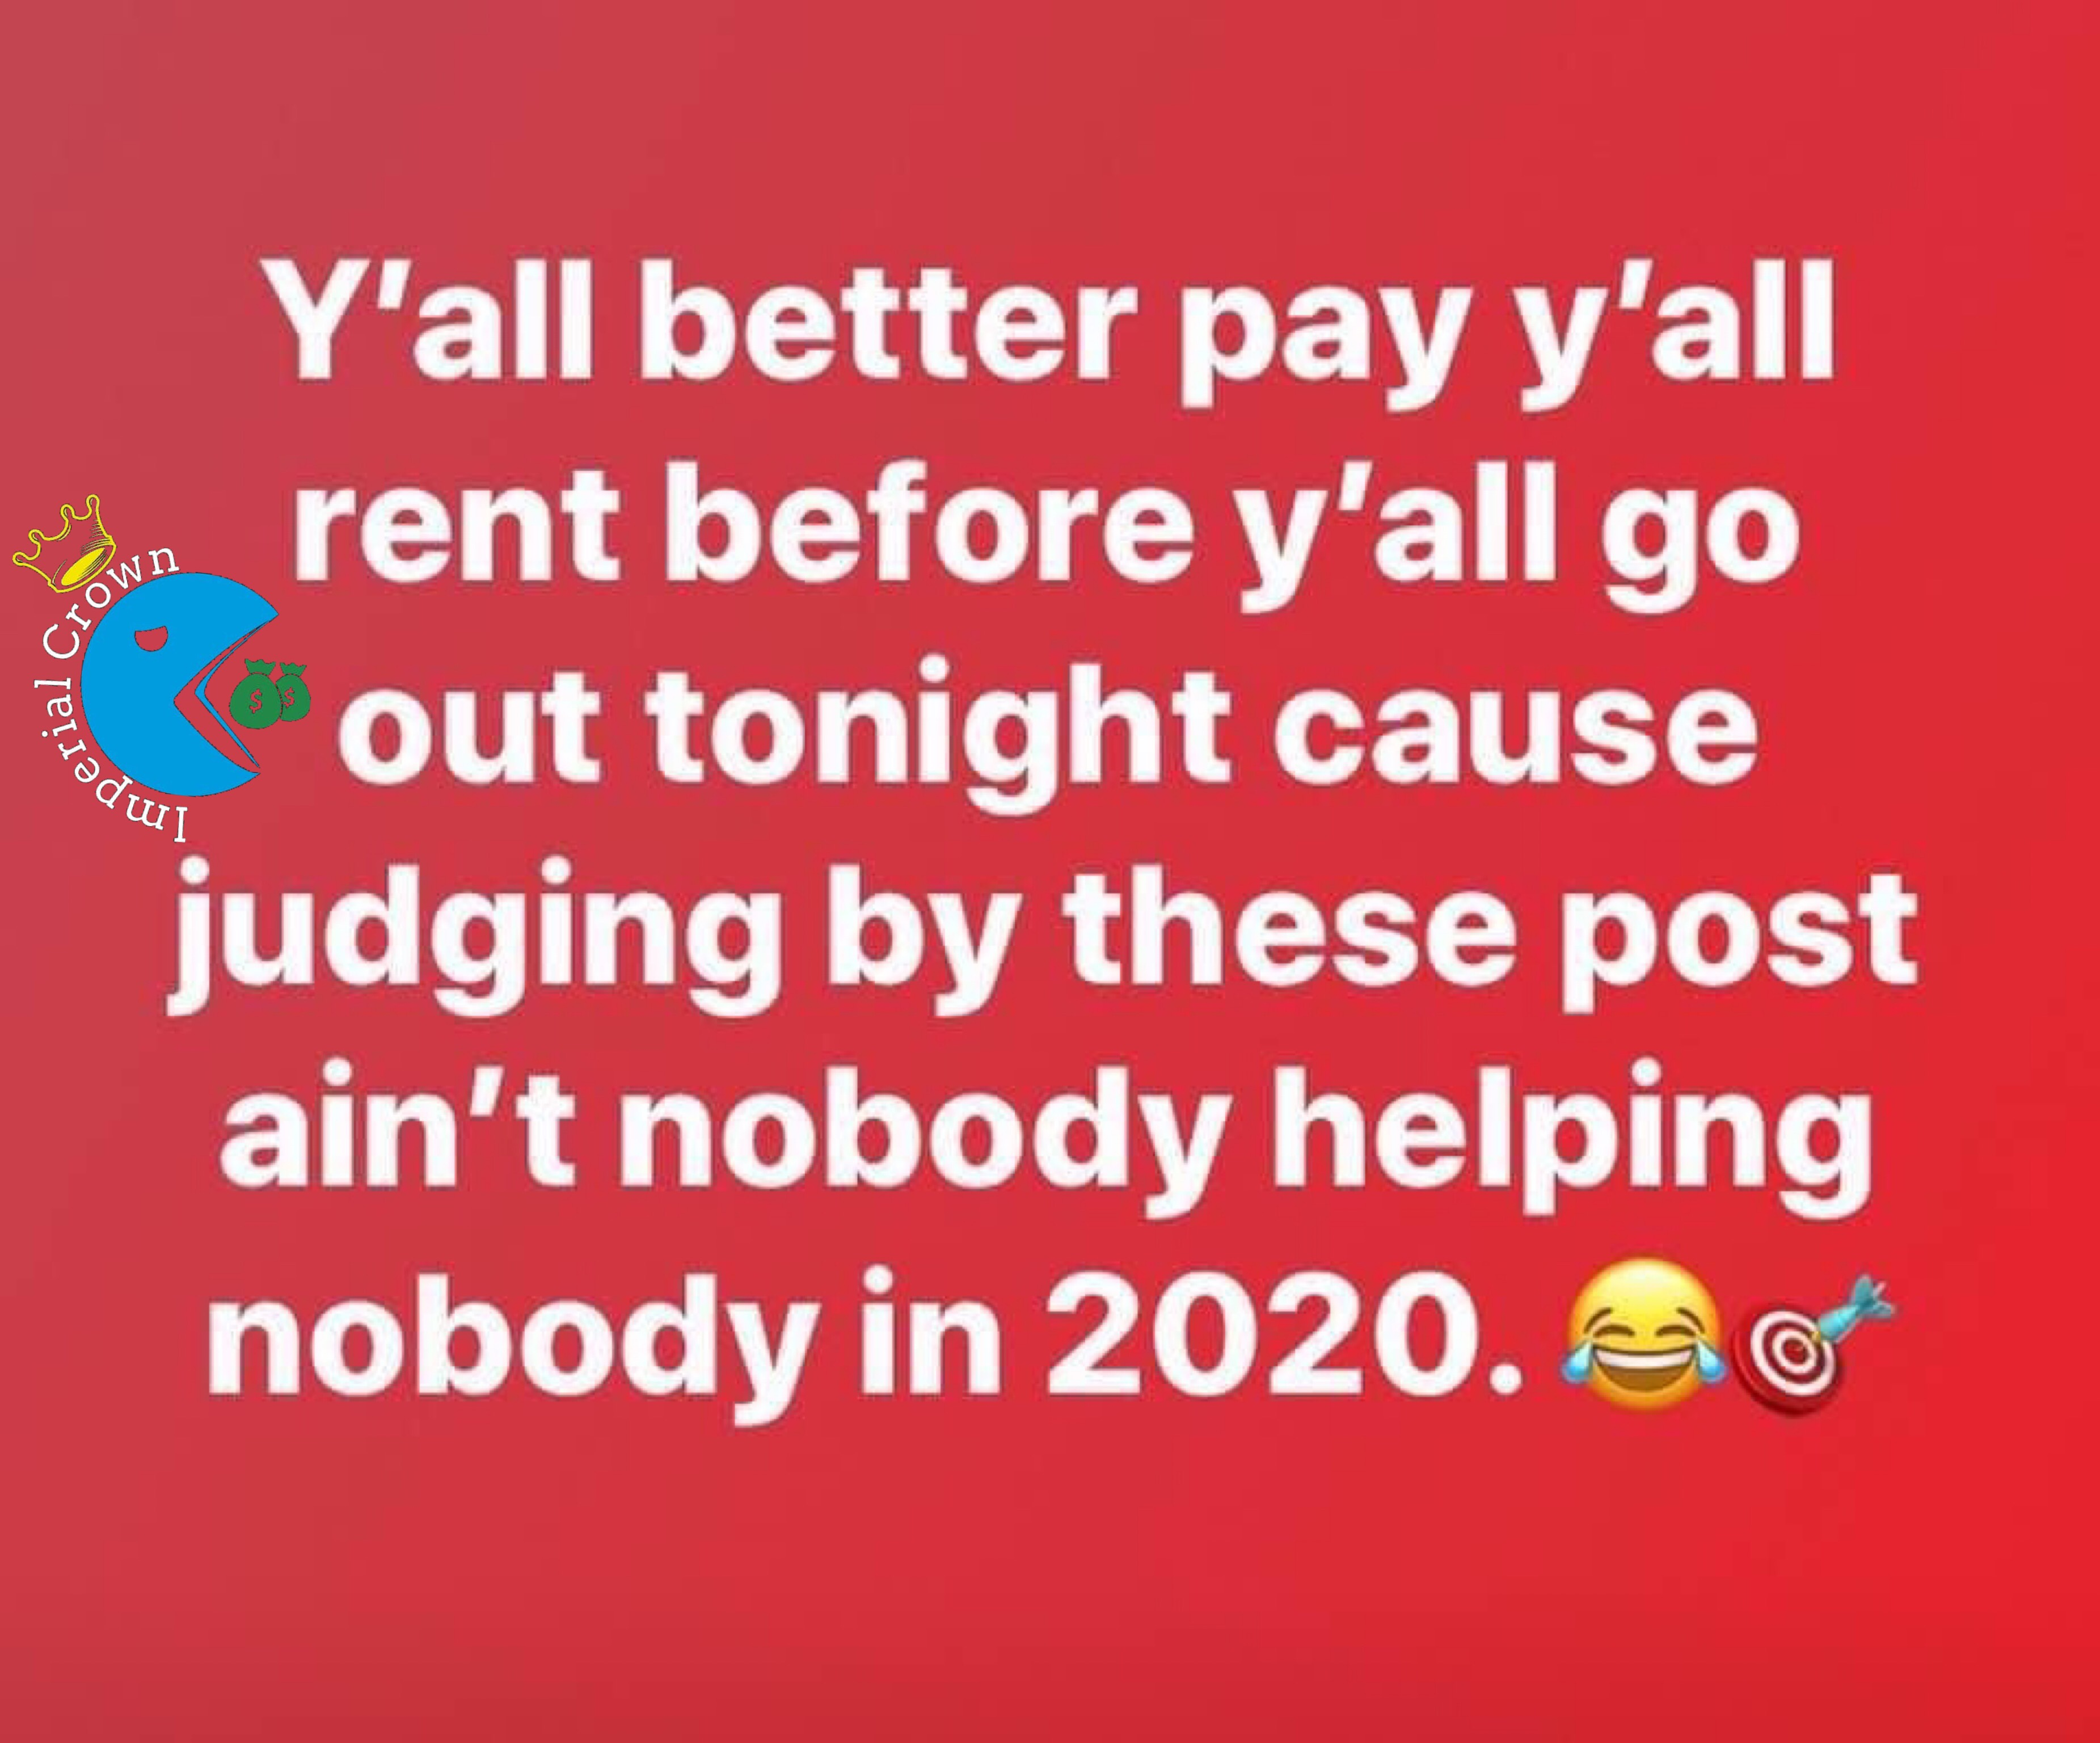 Y'all better pay y'all rent before y'all go out tonight cause judging by these post ain't nobody helping nobody in 2020